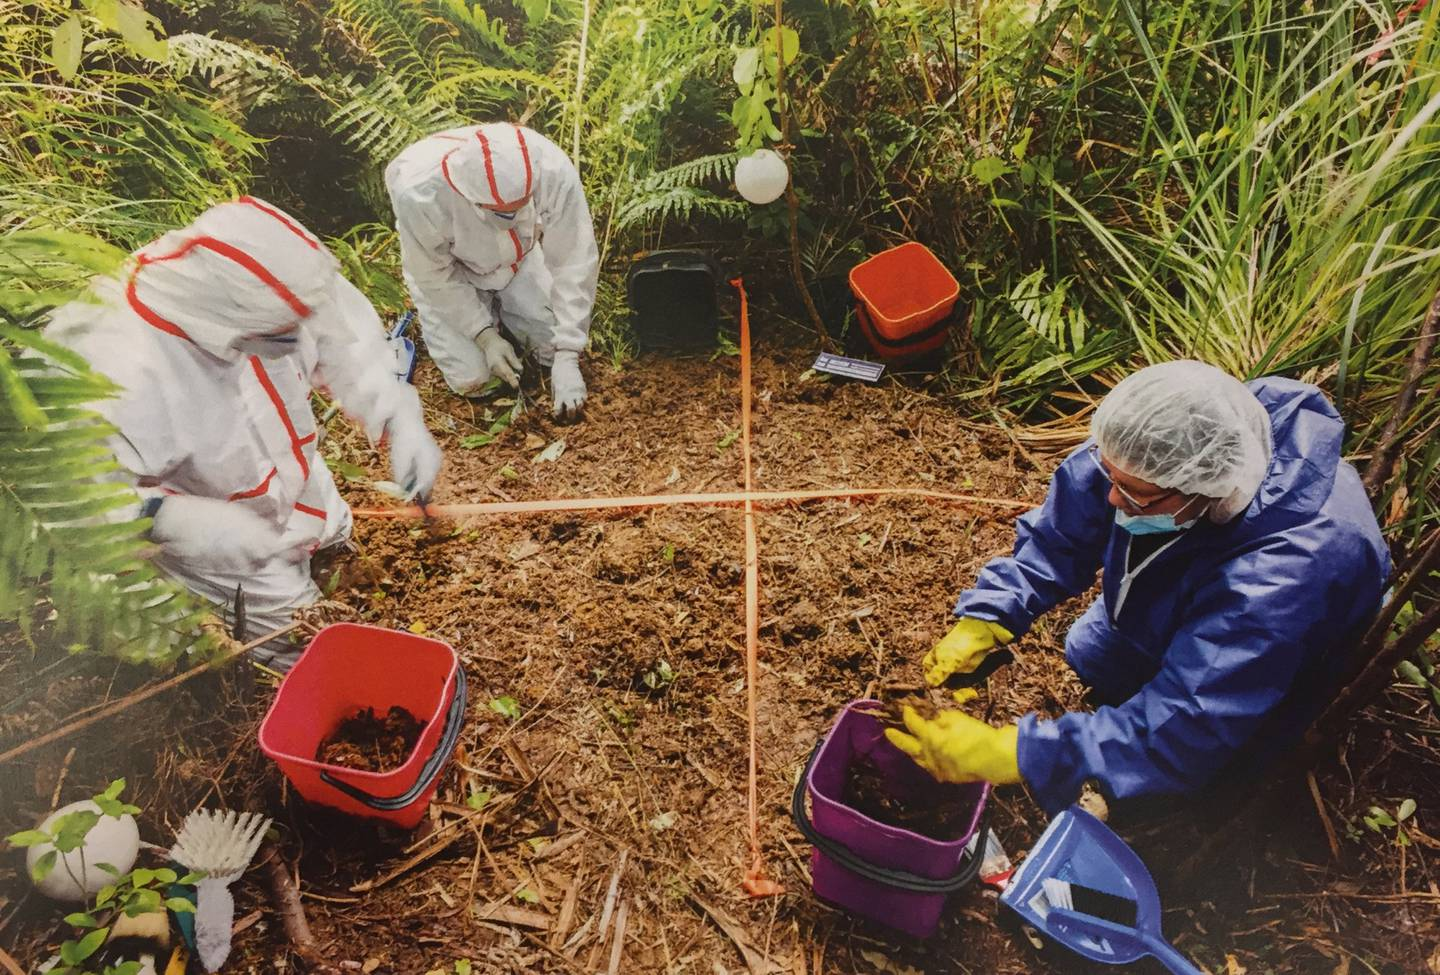 Police forensic experts sift through the site where Grace Millane's body was found in the...